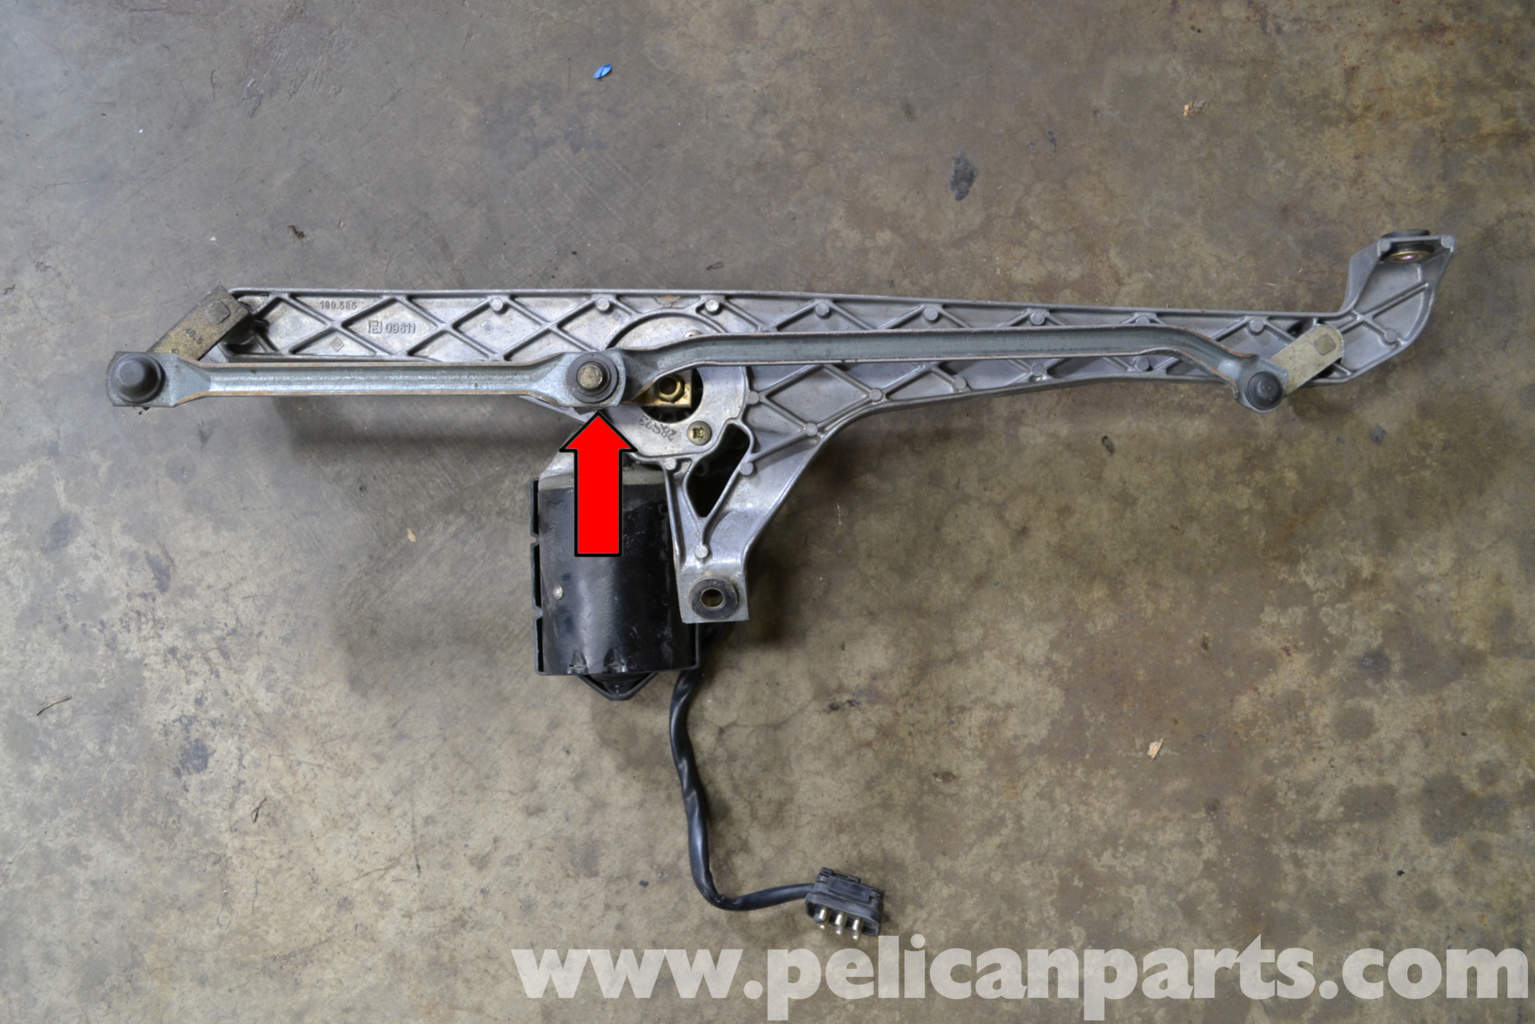 Windshield Wiper Motor Replacement on Wiver Motor Replacement